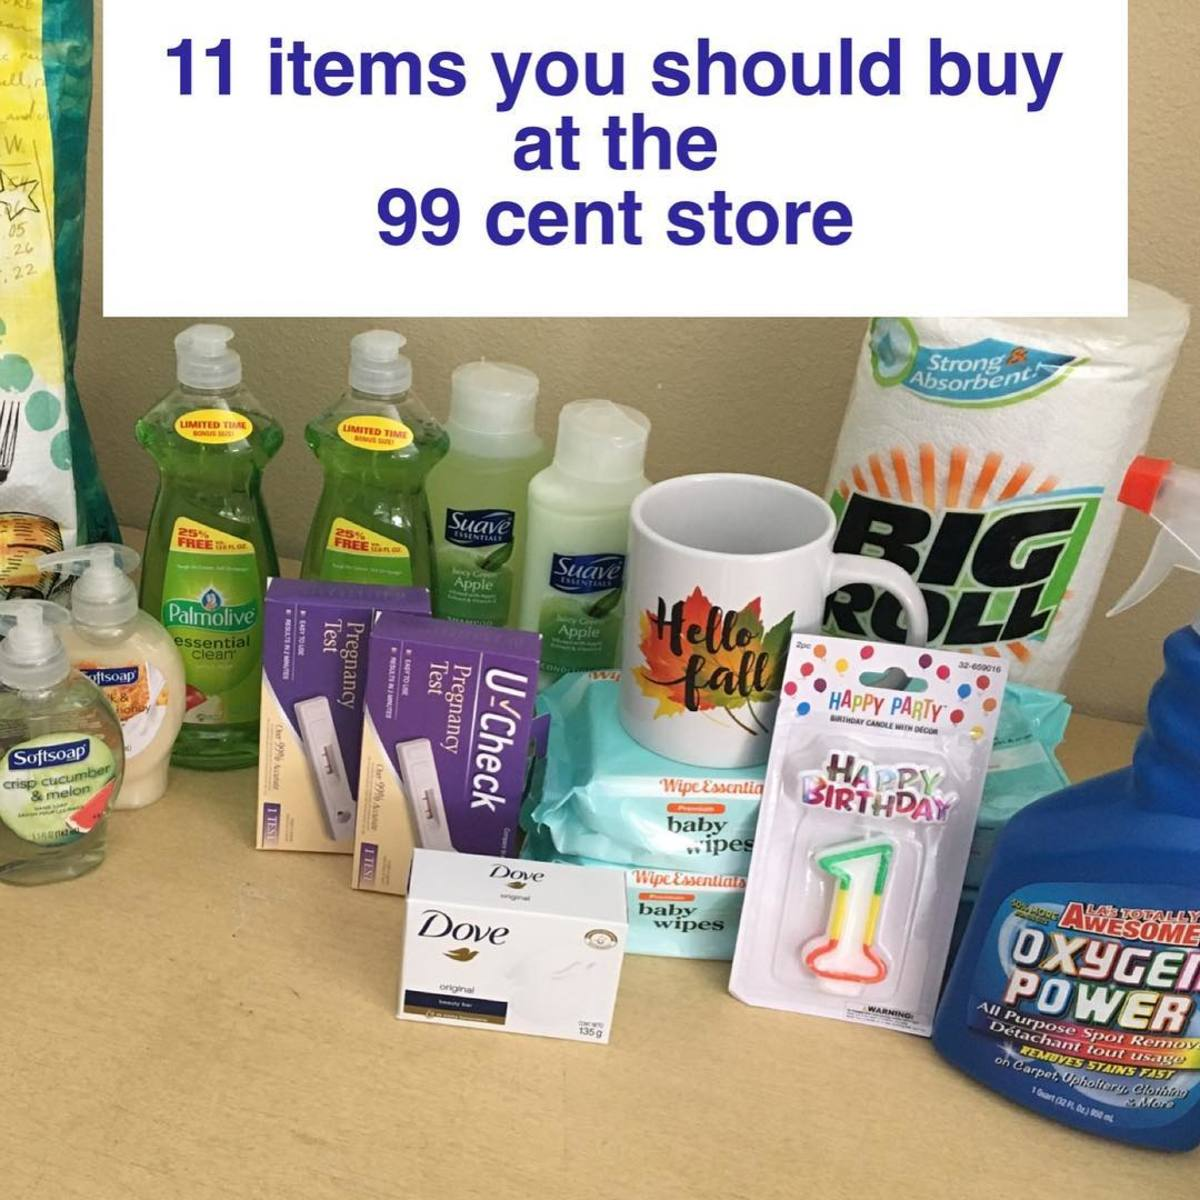 Check out everything I got at the 99 cent store for only $20!